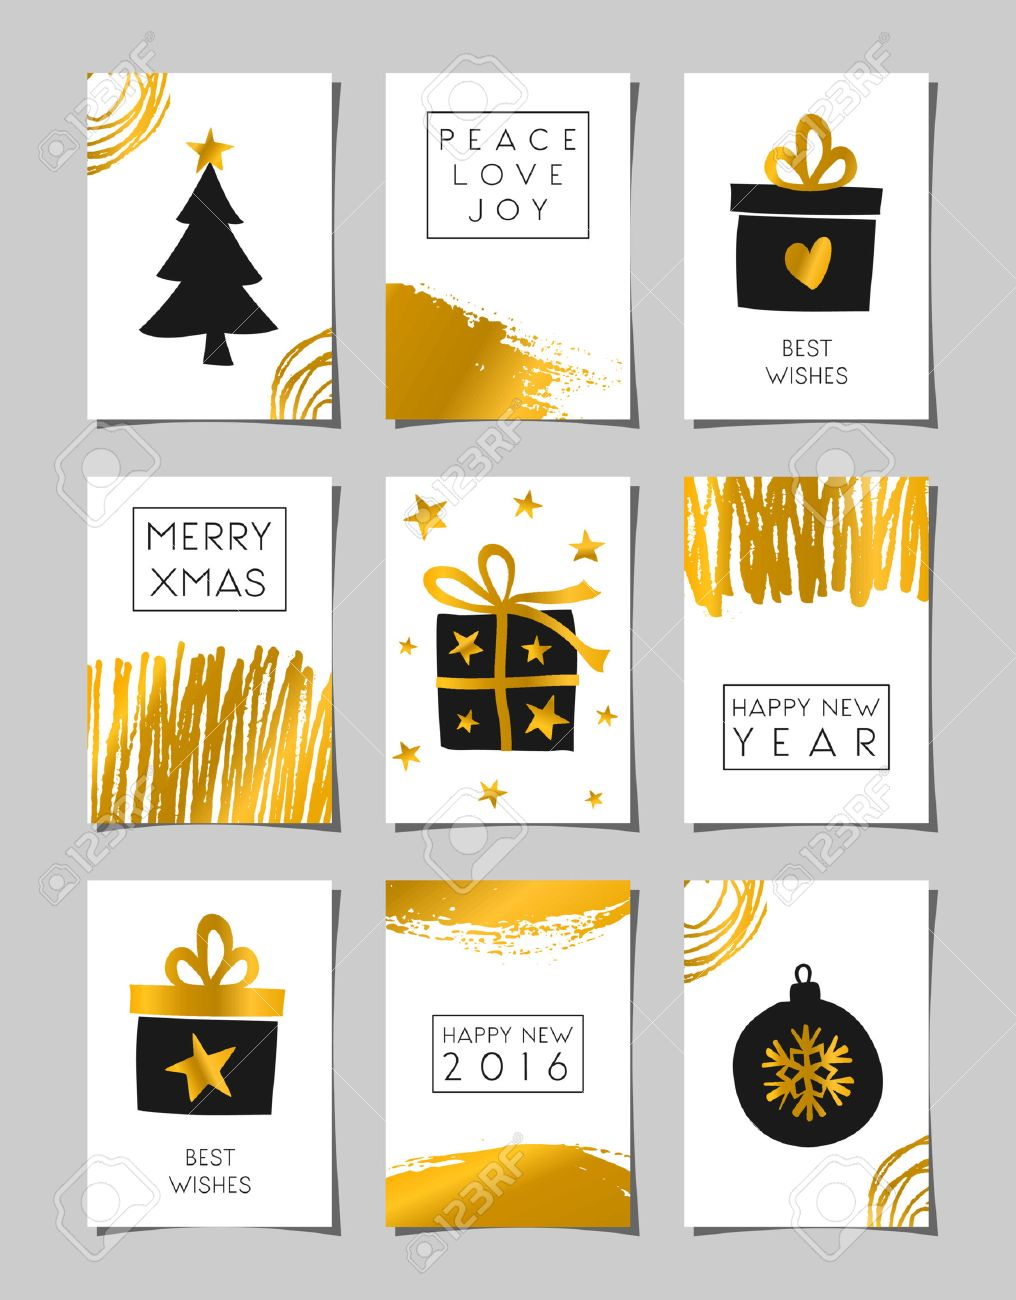 A Set Of Christmas Greeting Card Templates In Black White And